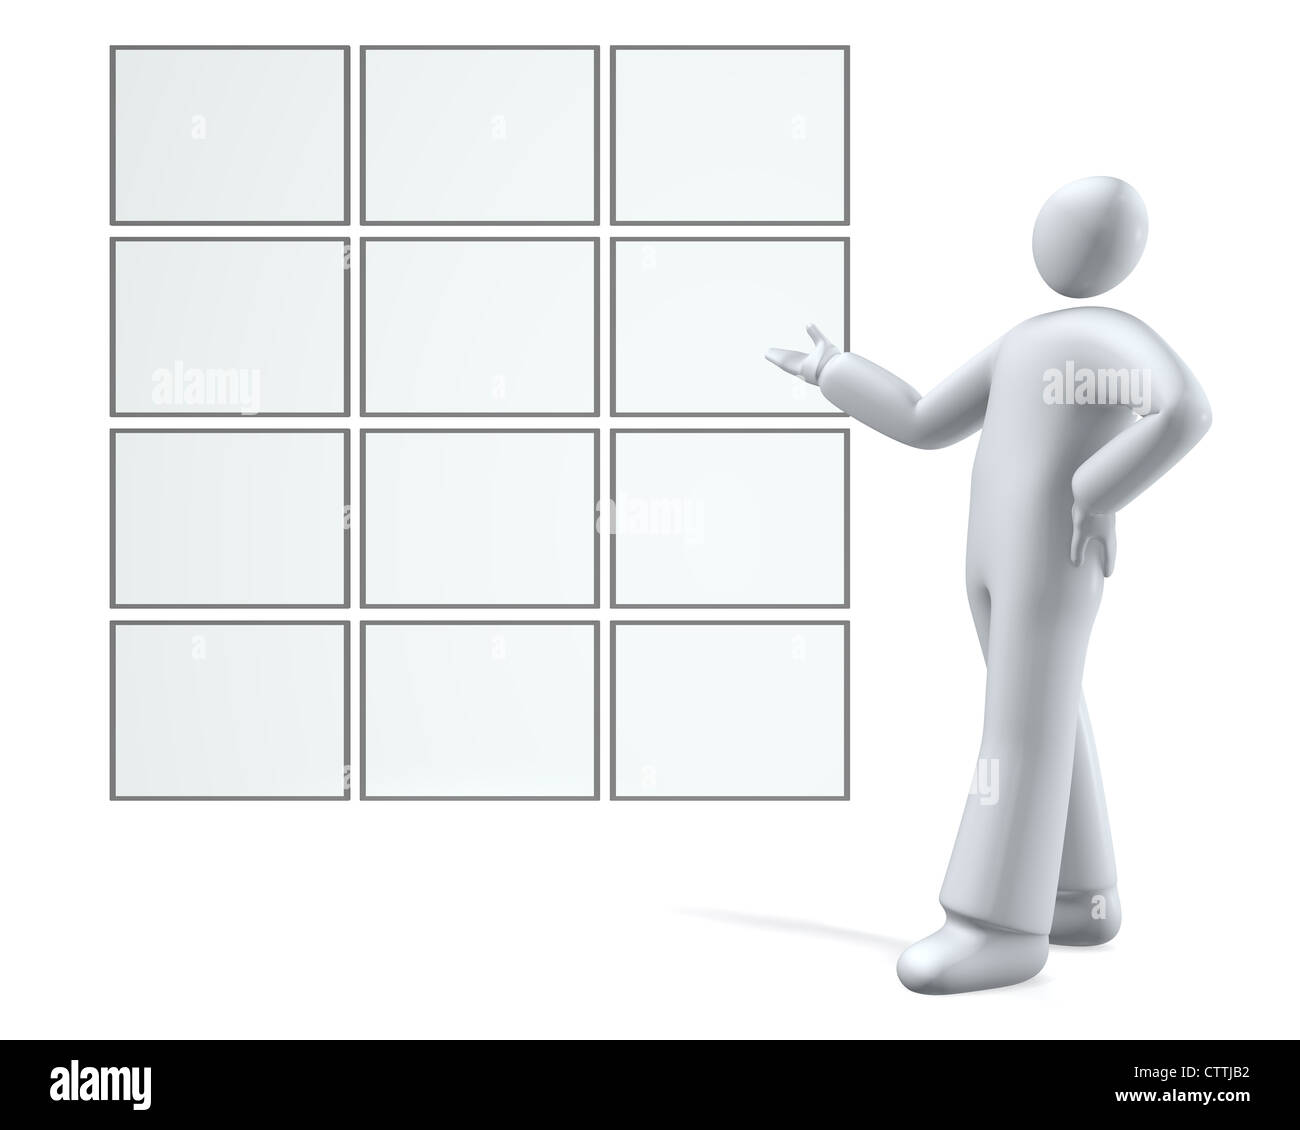 Empty screens / boards for presentation and show - Stock Image